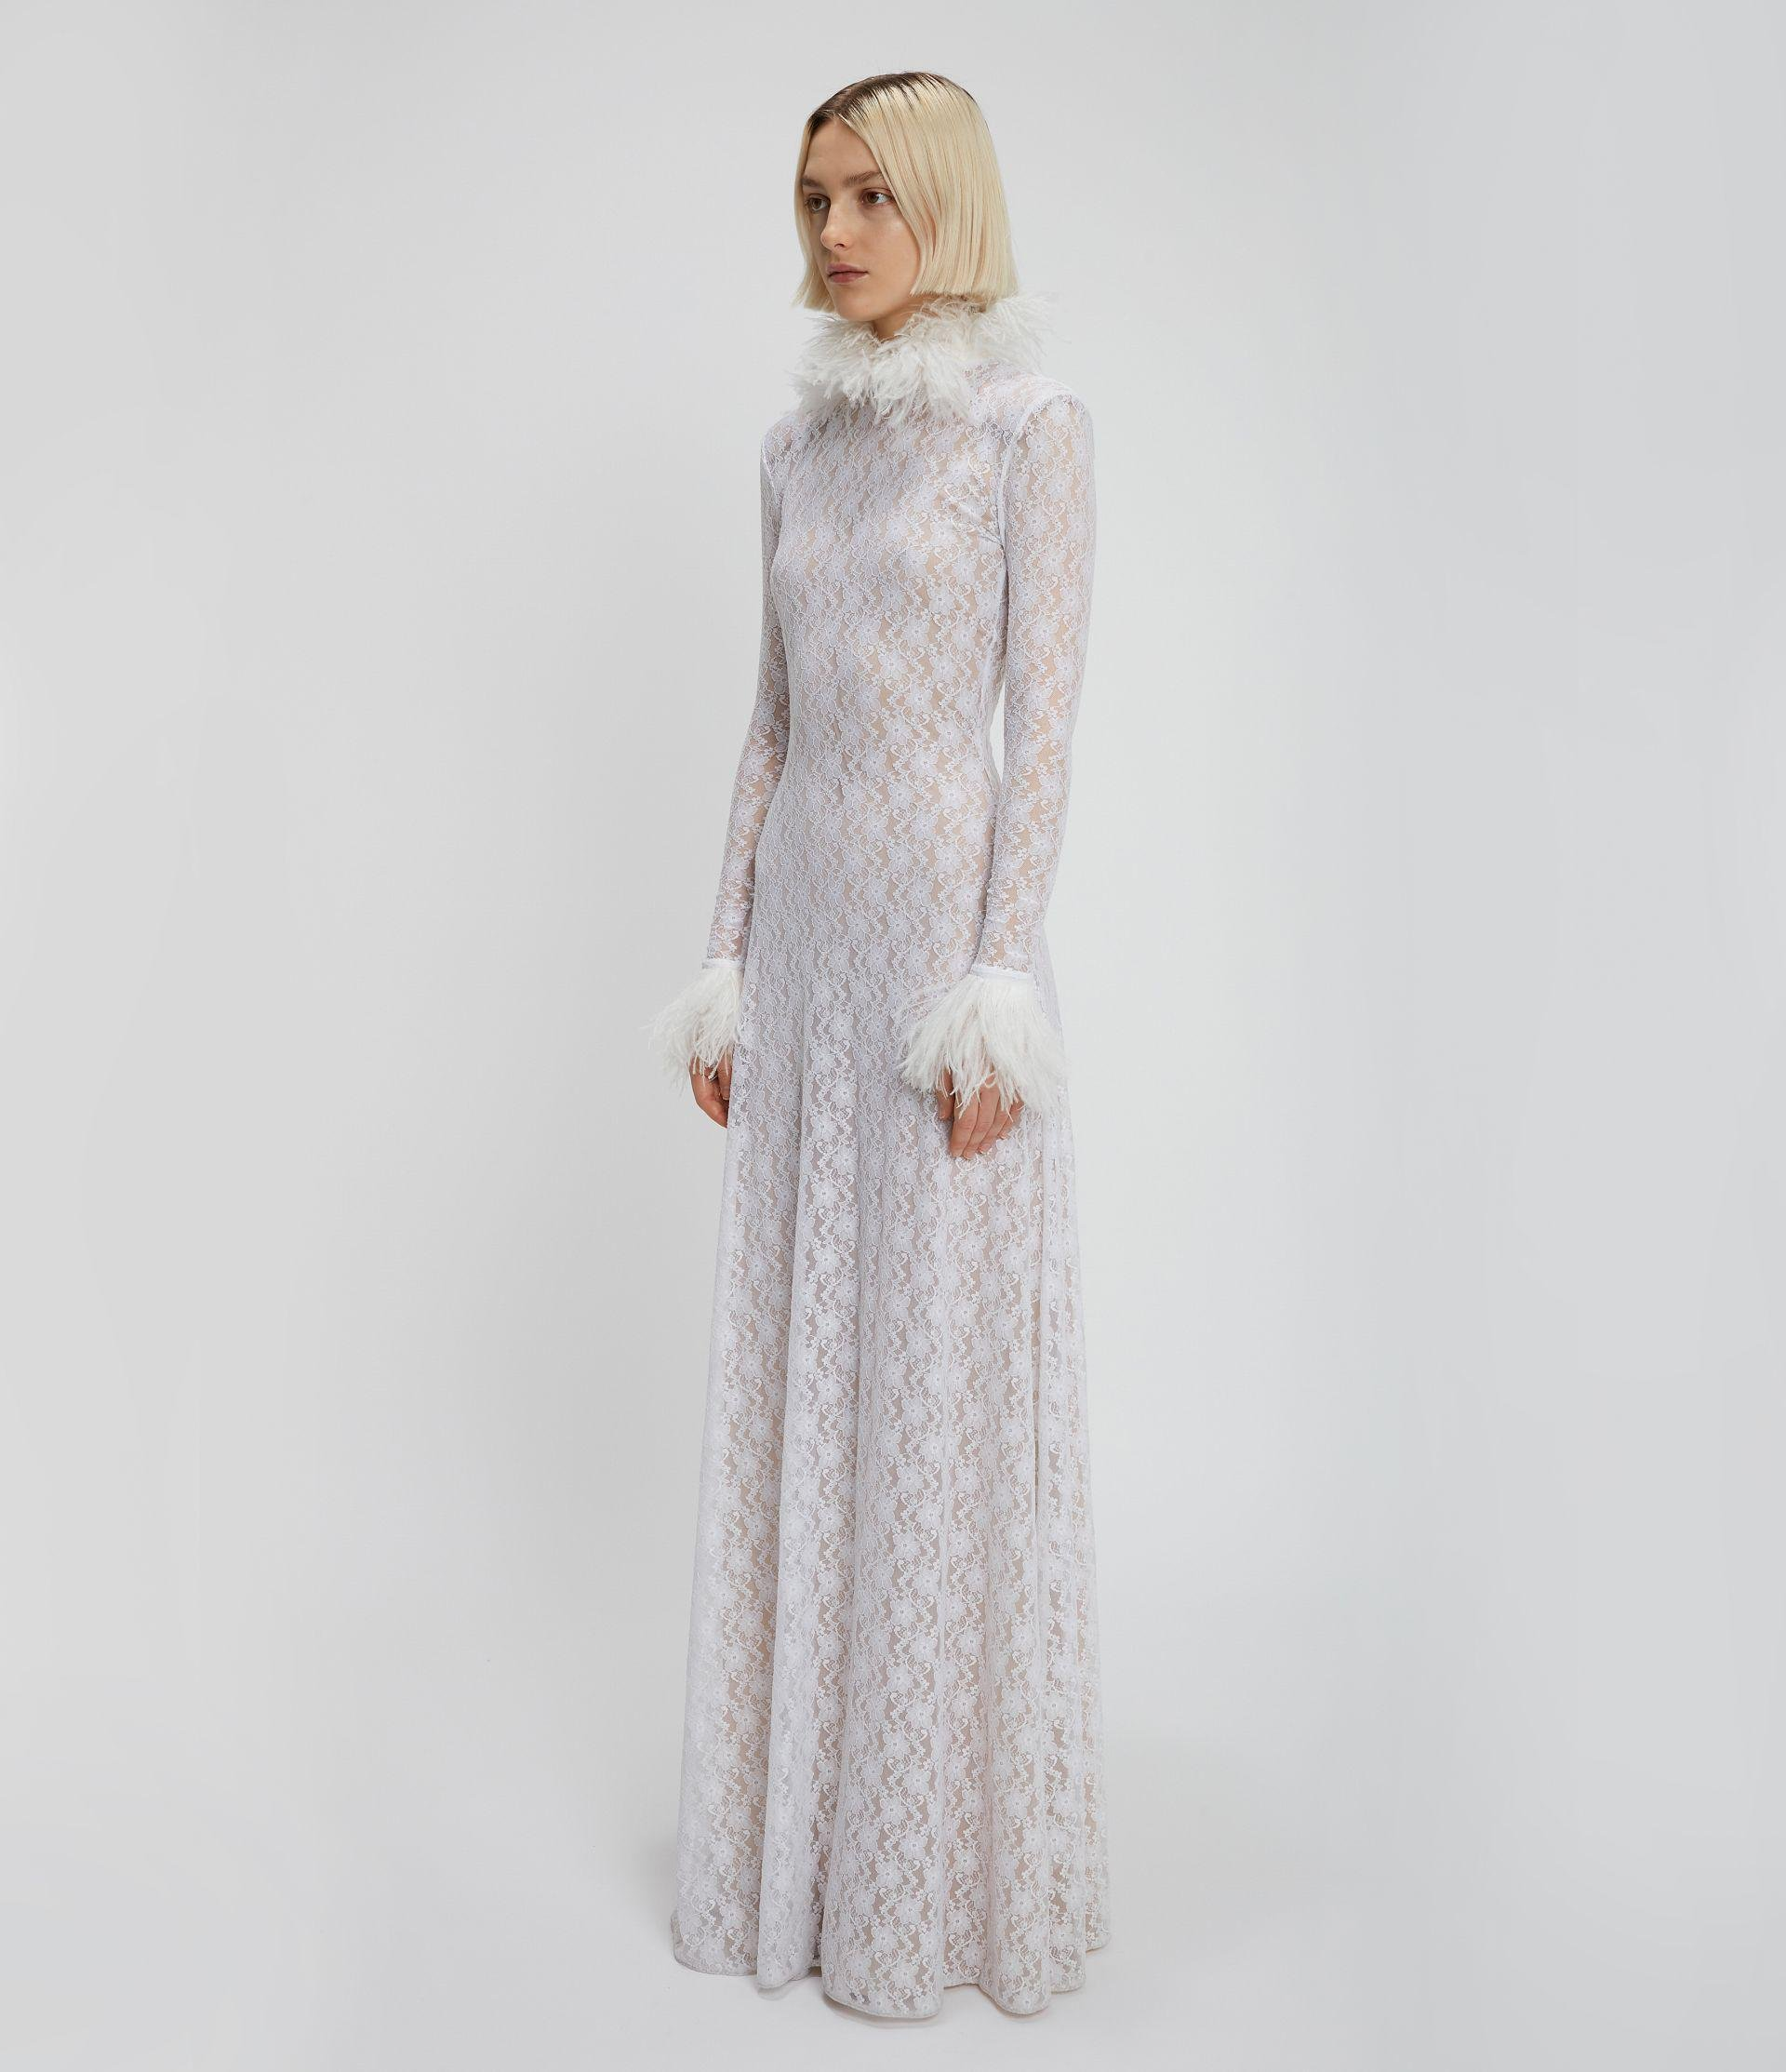 Christopher Kane Bridal: Lace Gown 1